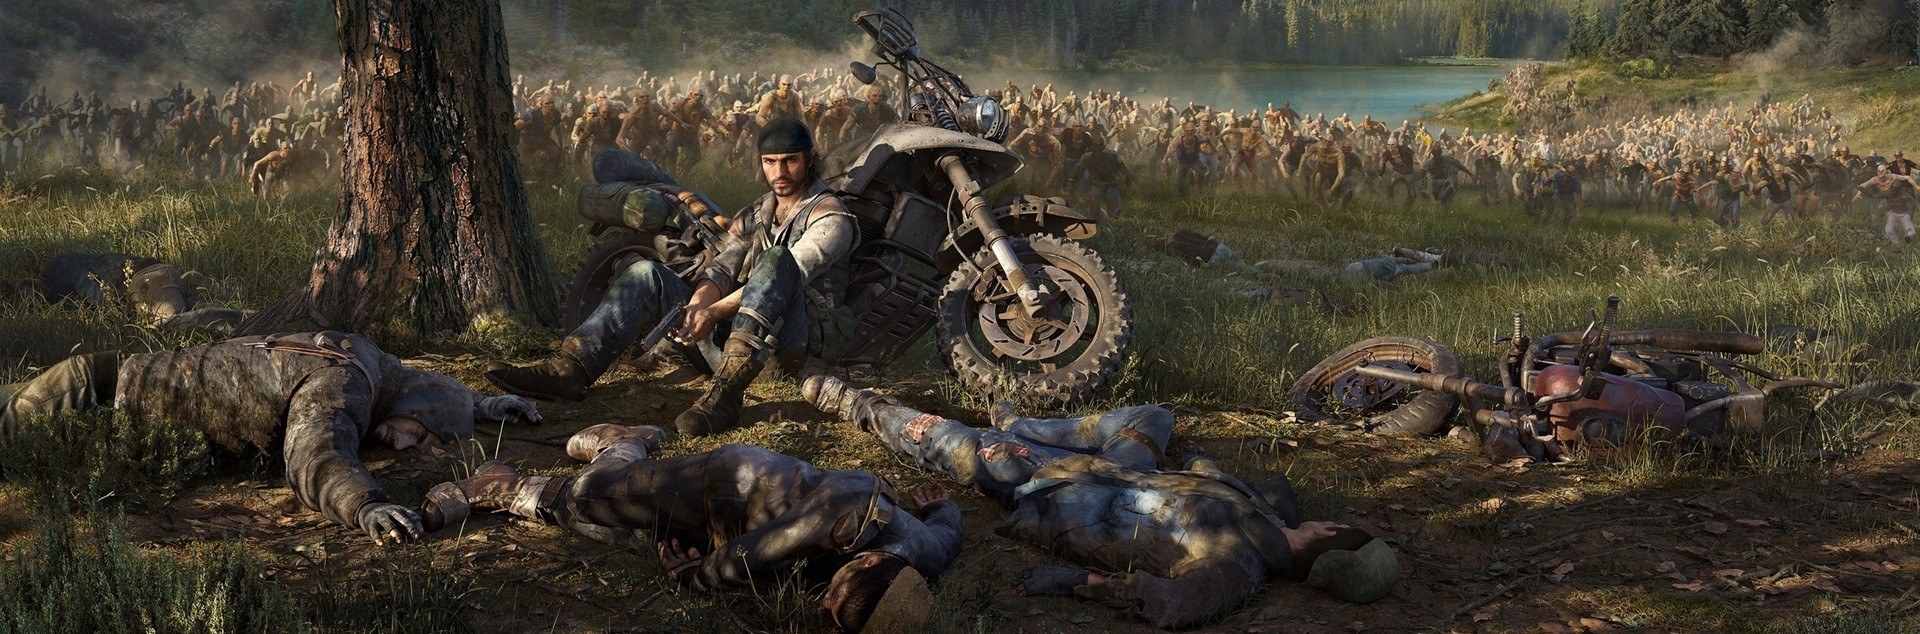 Days Gone PS4 4K Background